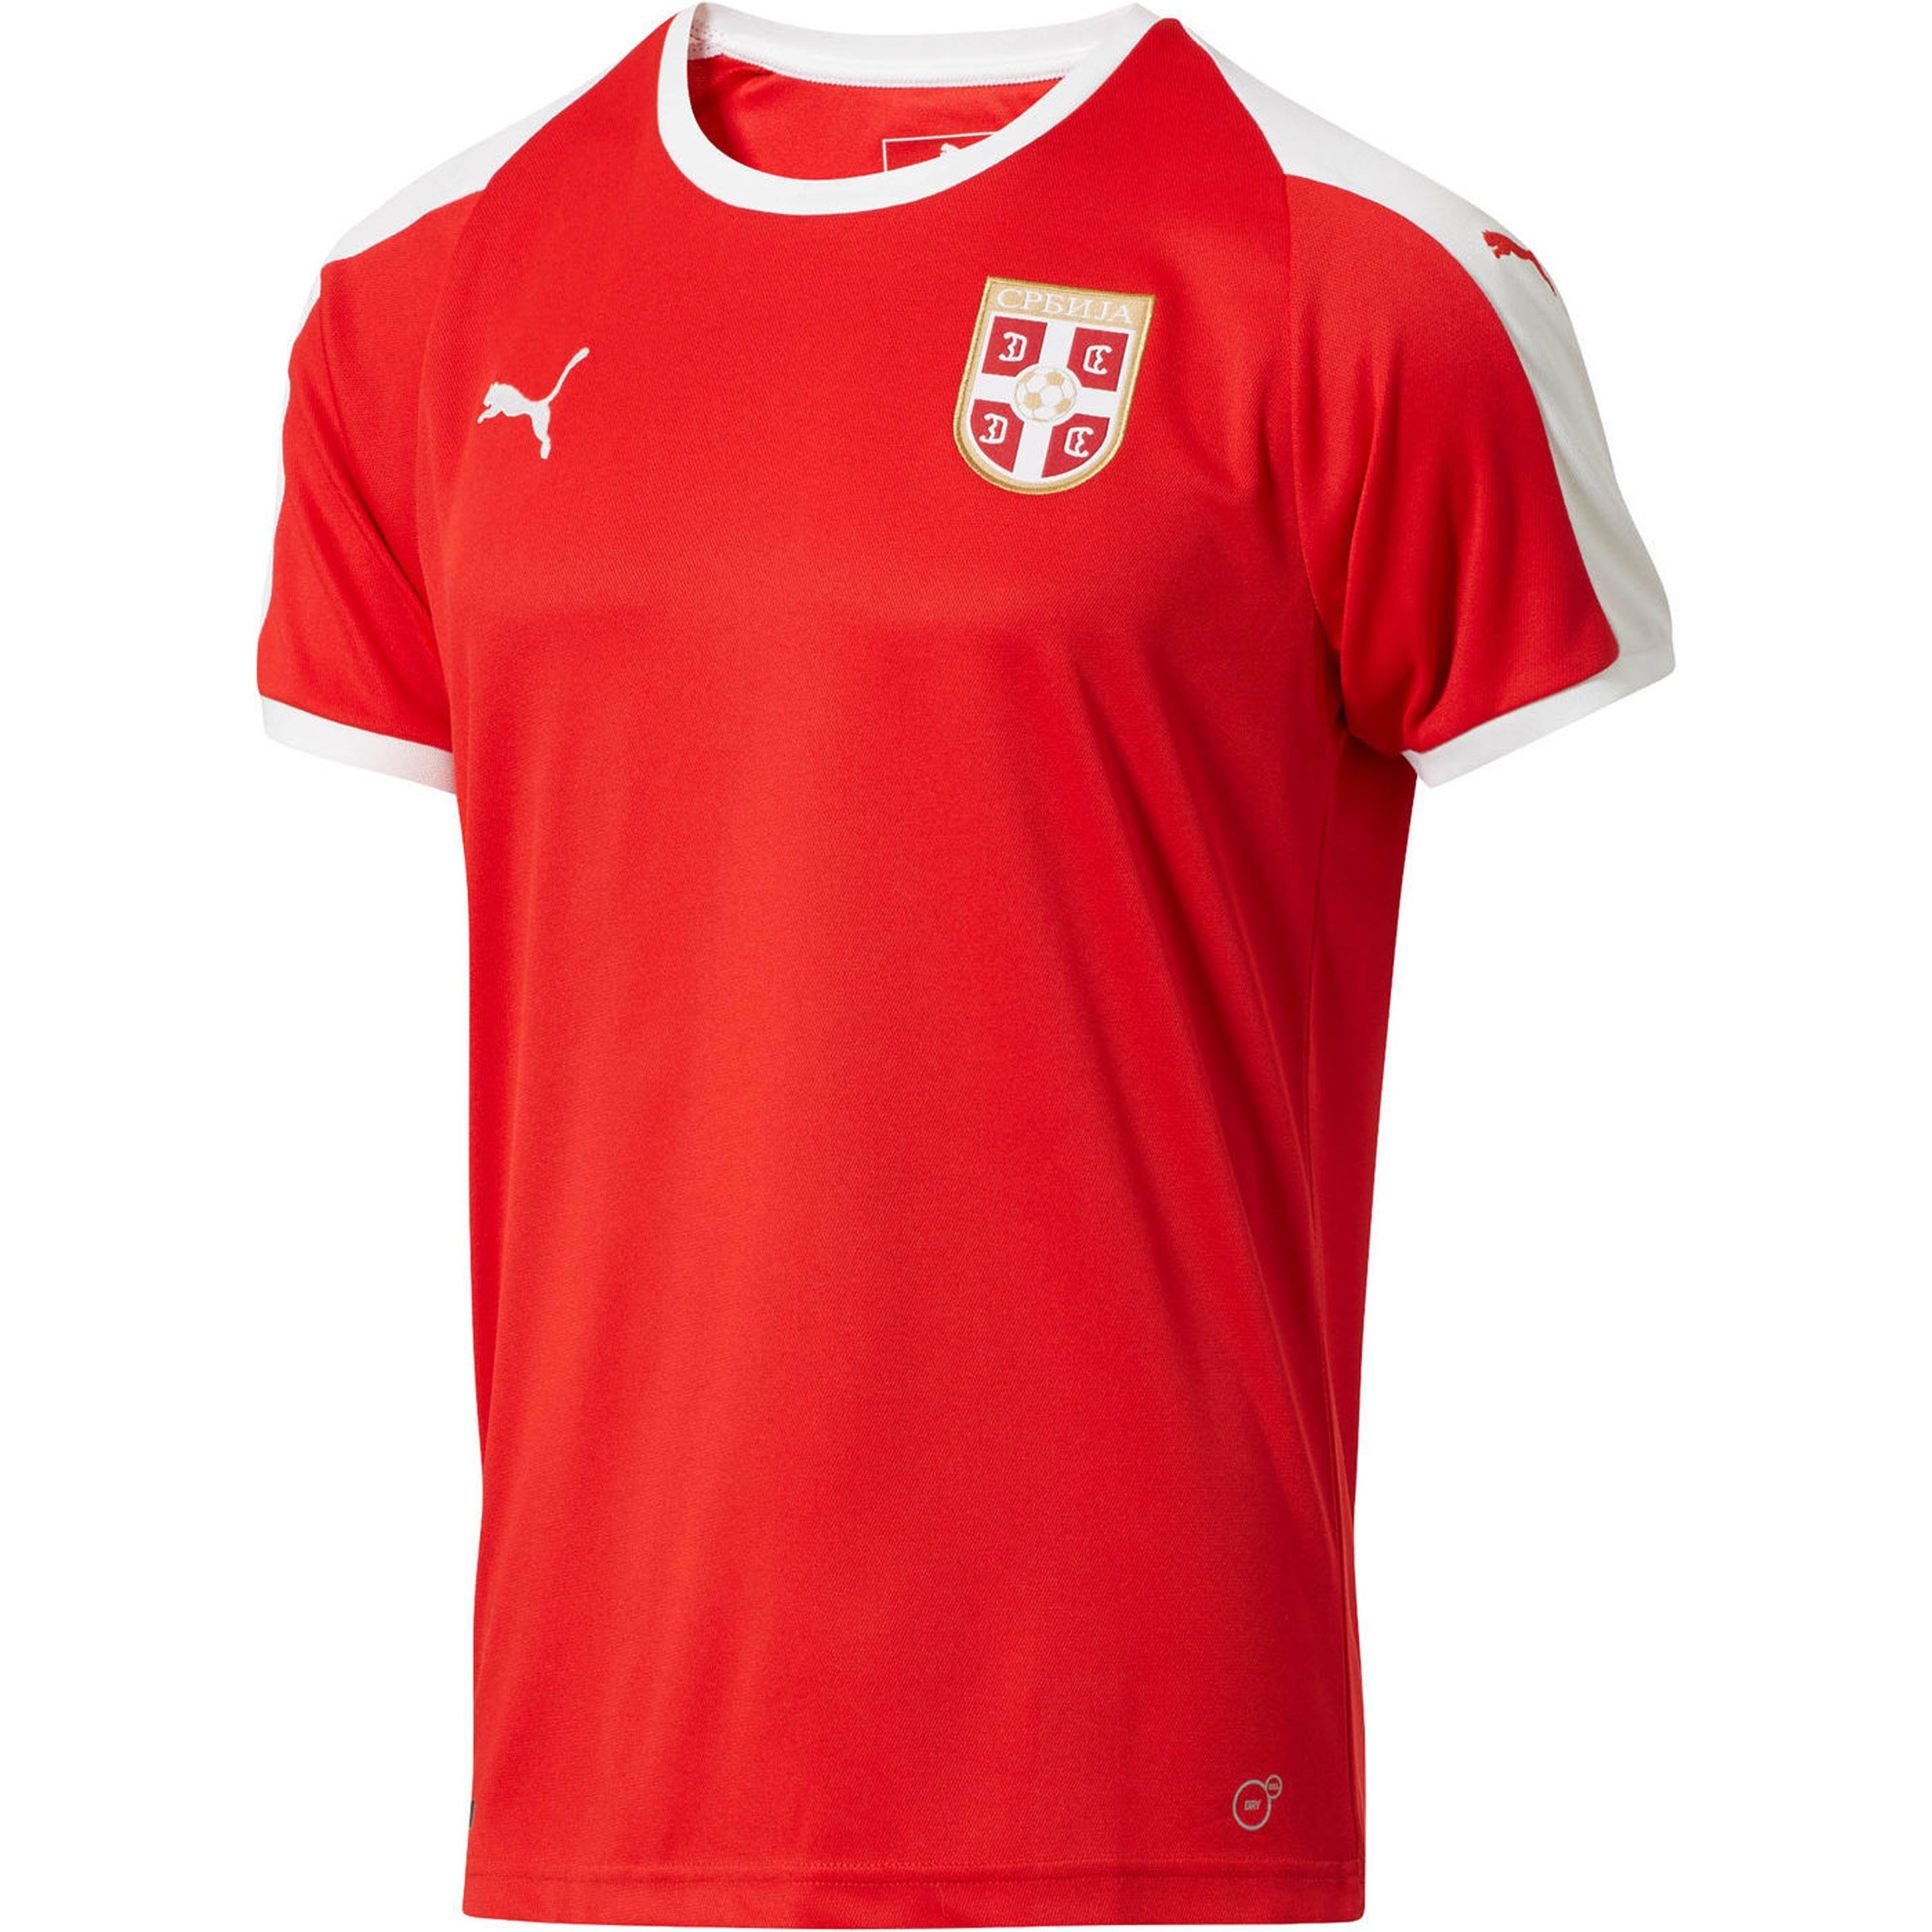 e2289582f7c Costa Rica s traditionally red and white kit was released under the slogan